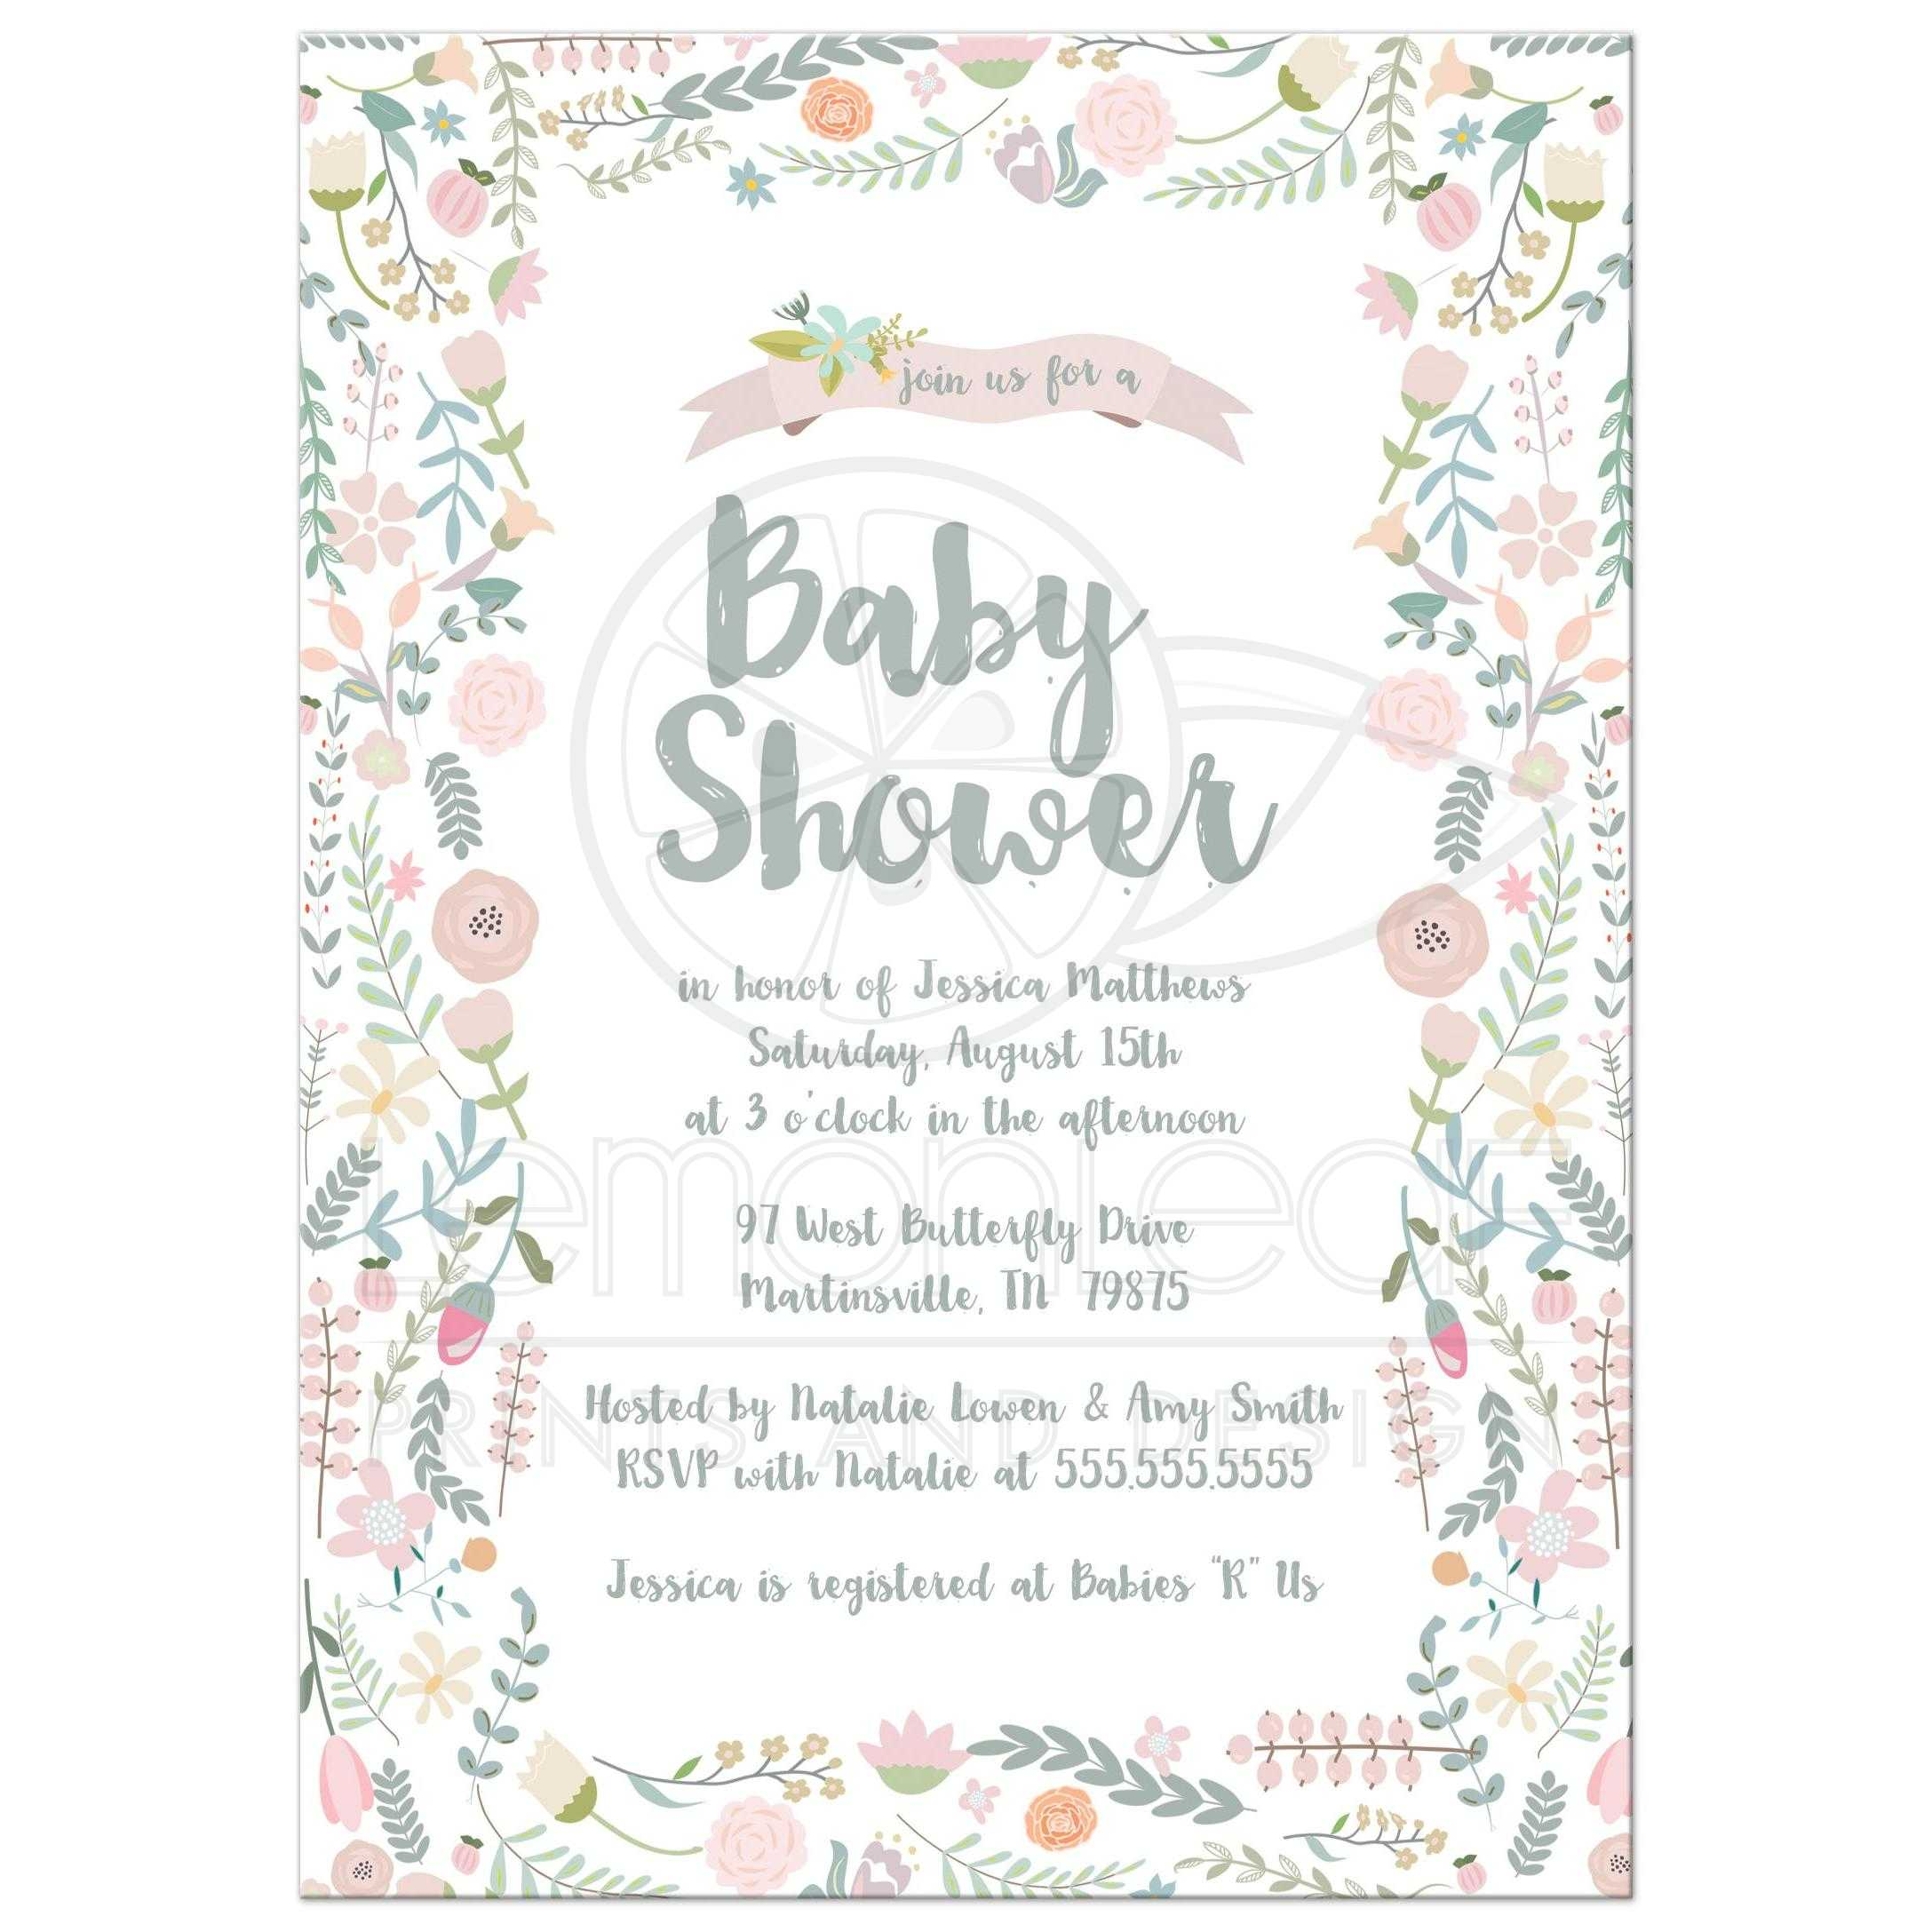 Baby Shower Invitation - Sweet Watercolor Floral Frame